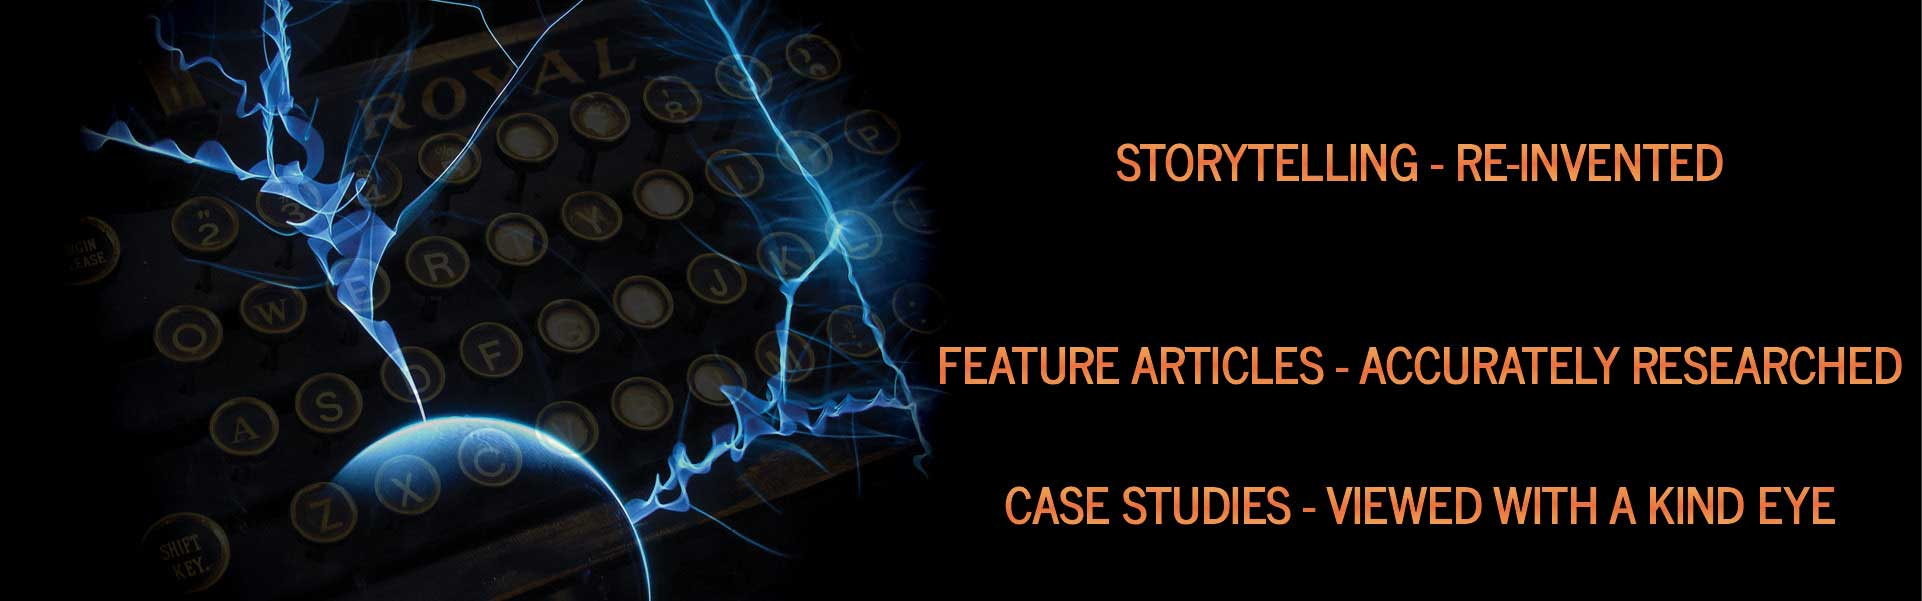 Storytelling re-invented - Feature articles accurately researched - Case studies viewed with a kind eye